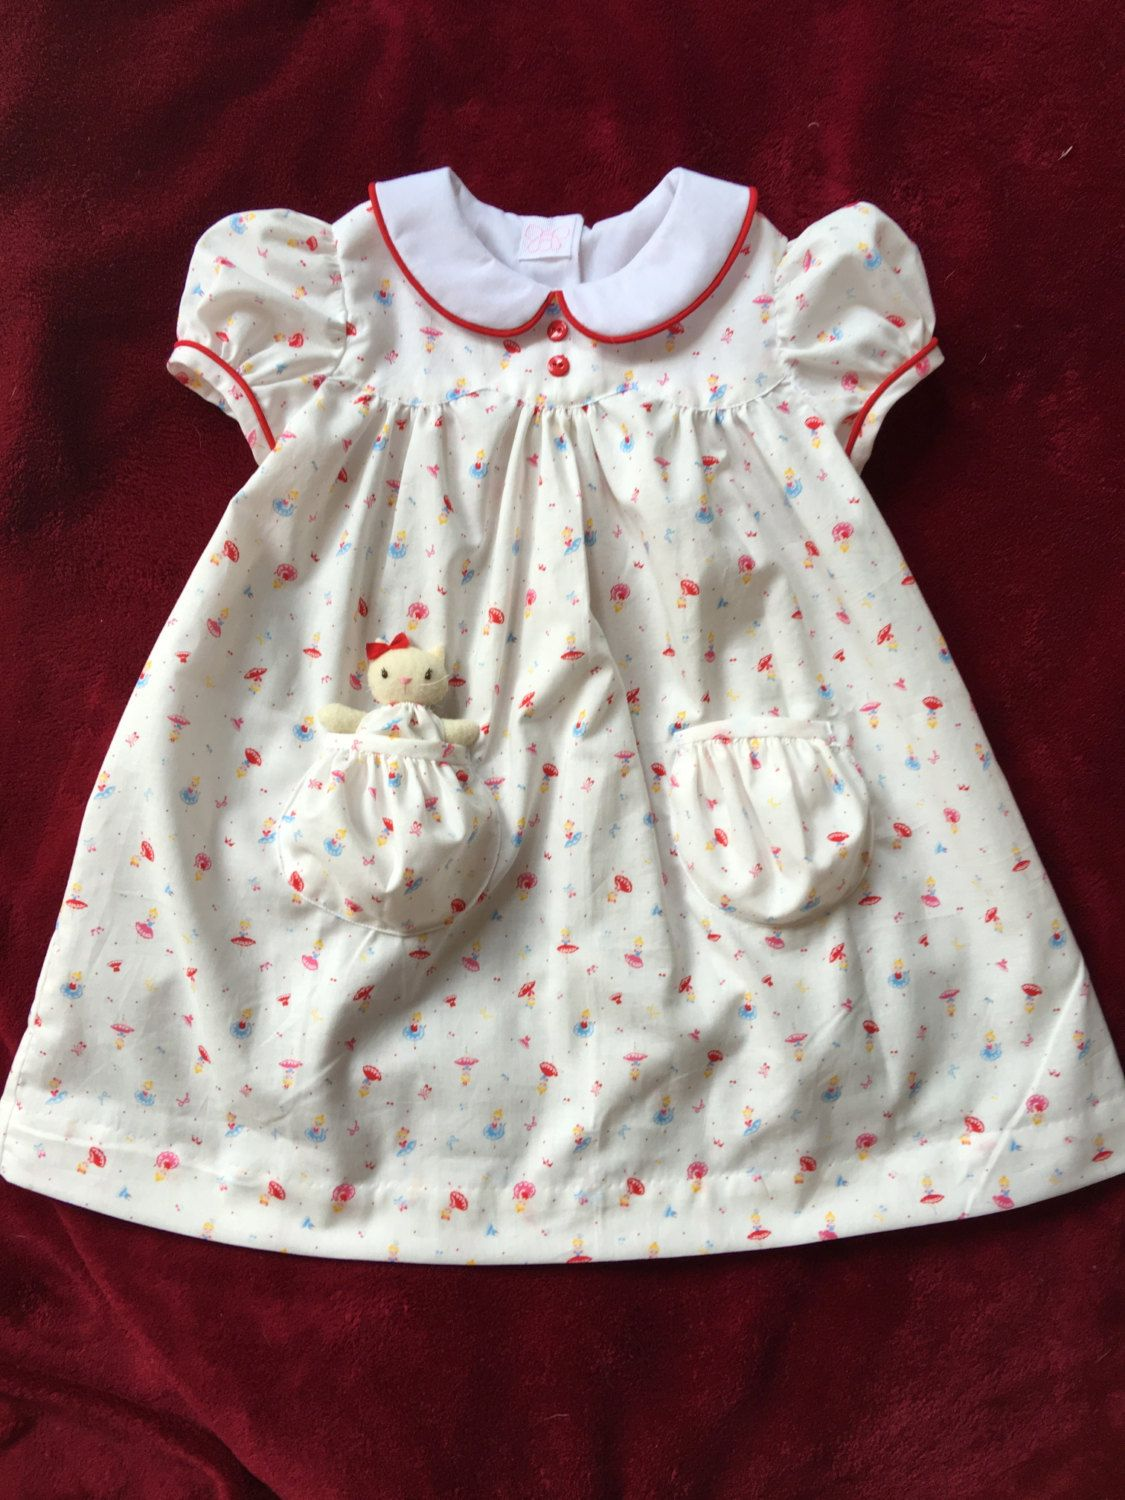 Tiny dancers dress size t with a pocket kitty by dragonbees on etsy